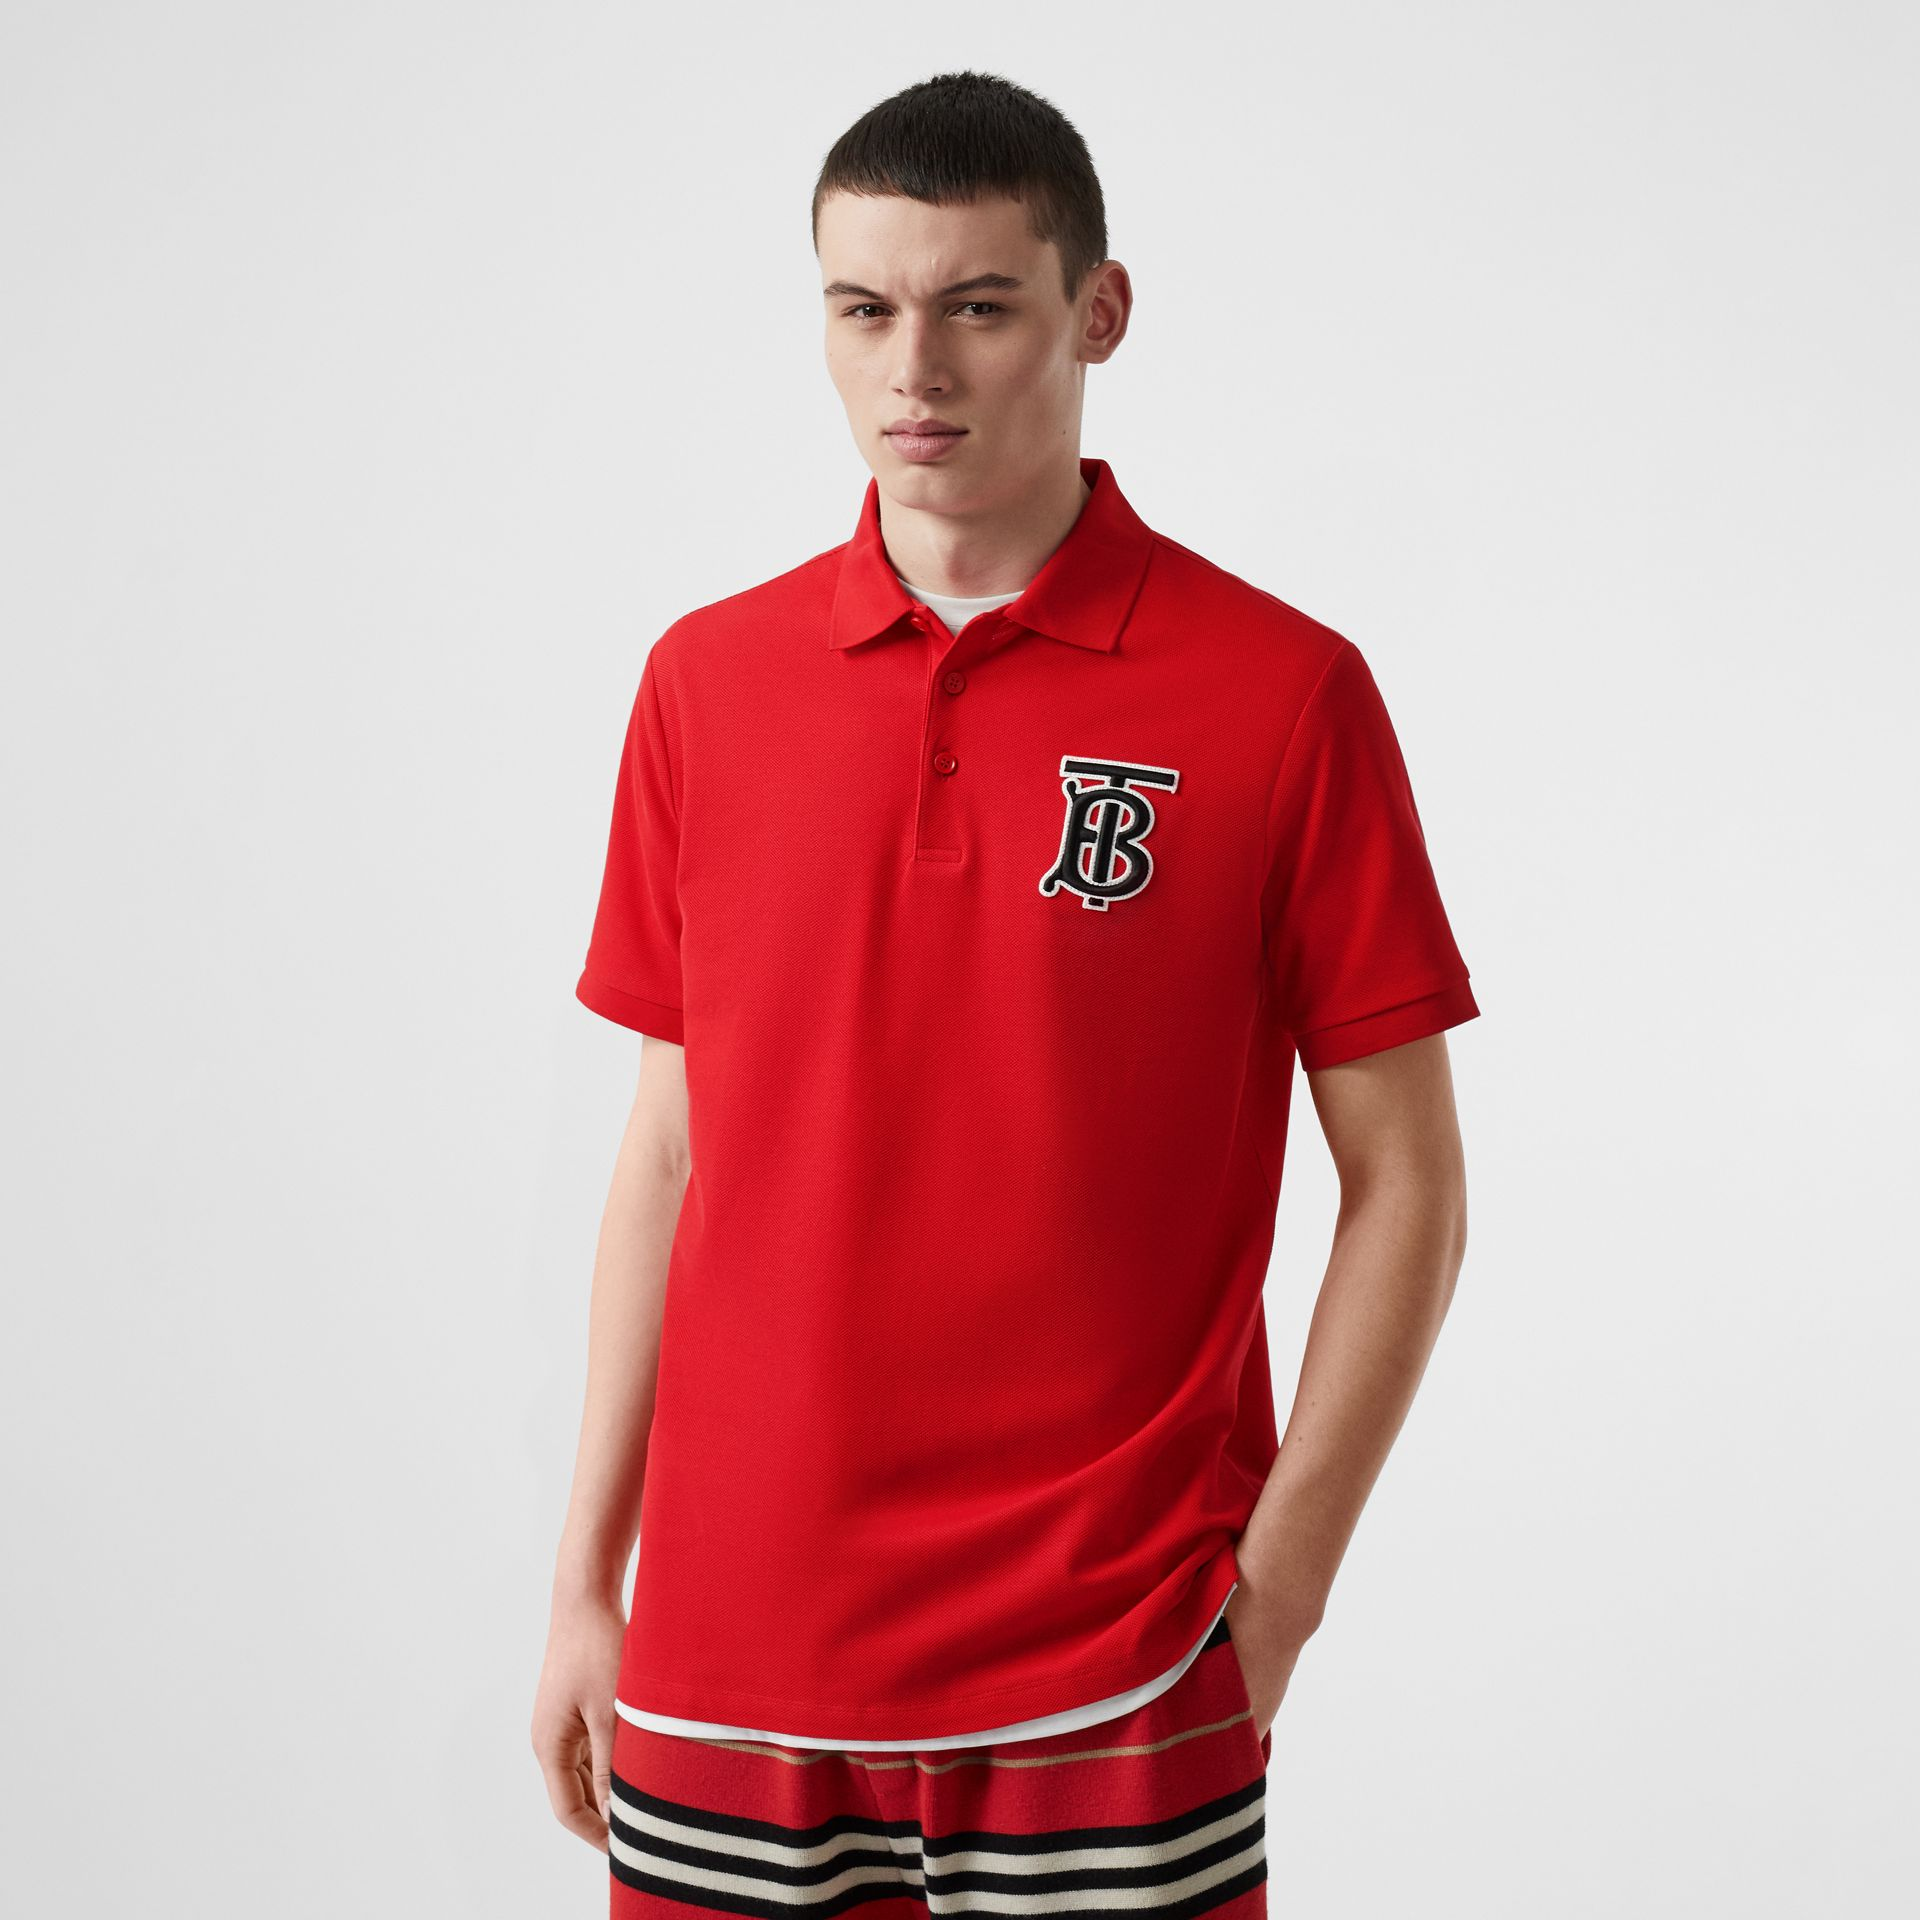 Monogram Motif Cotton Piqué Oversized Polo Shirt in Bright Red - Men | Burberry Australia - gallery image 4